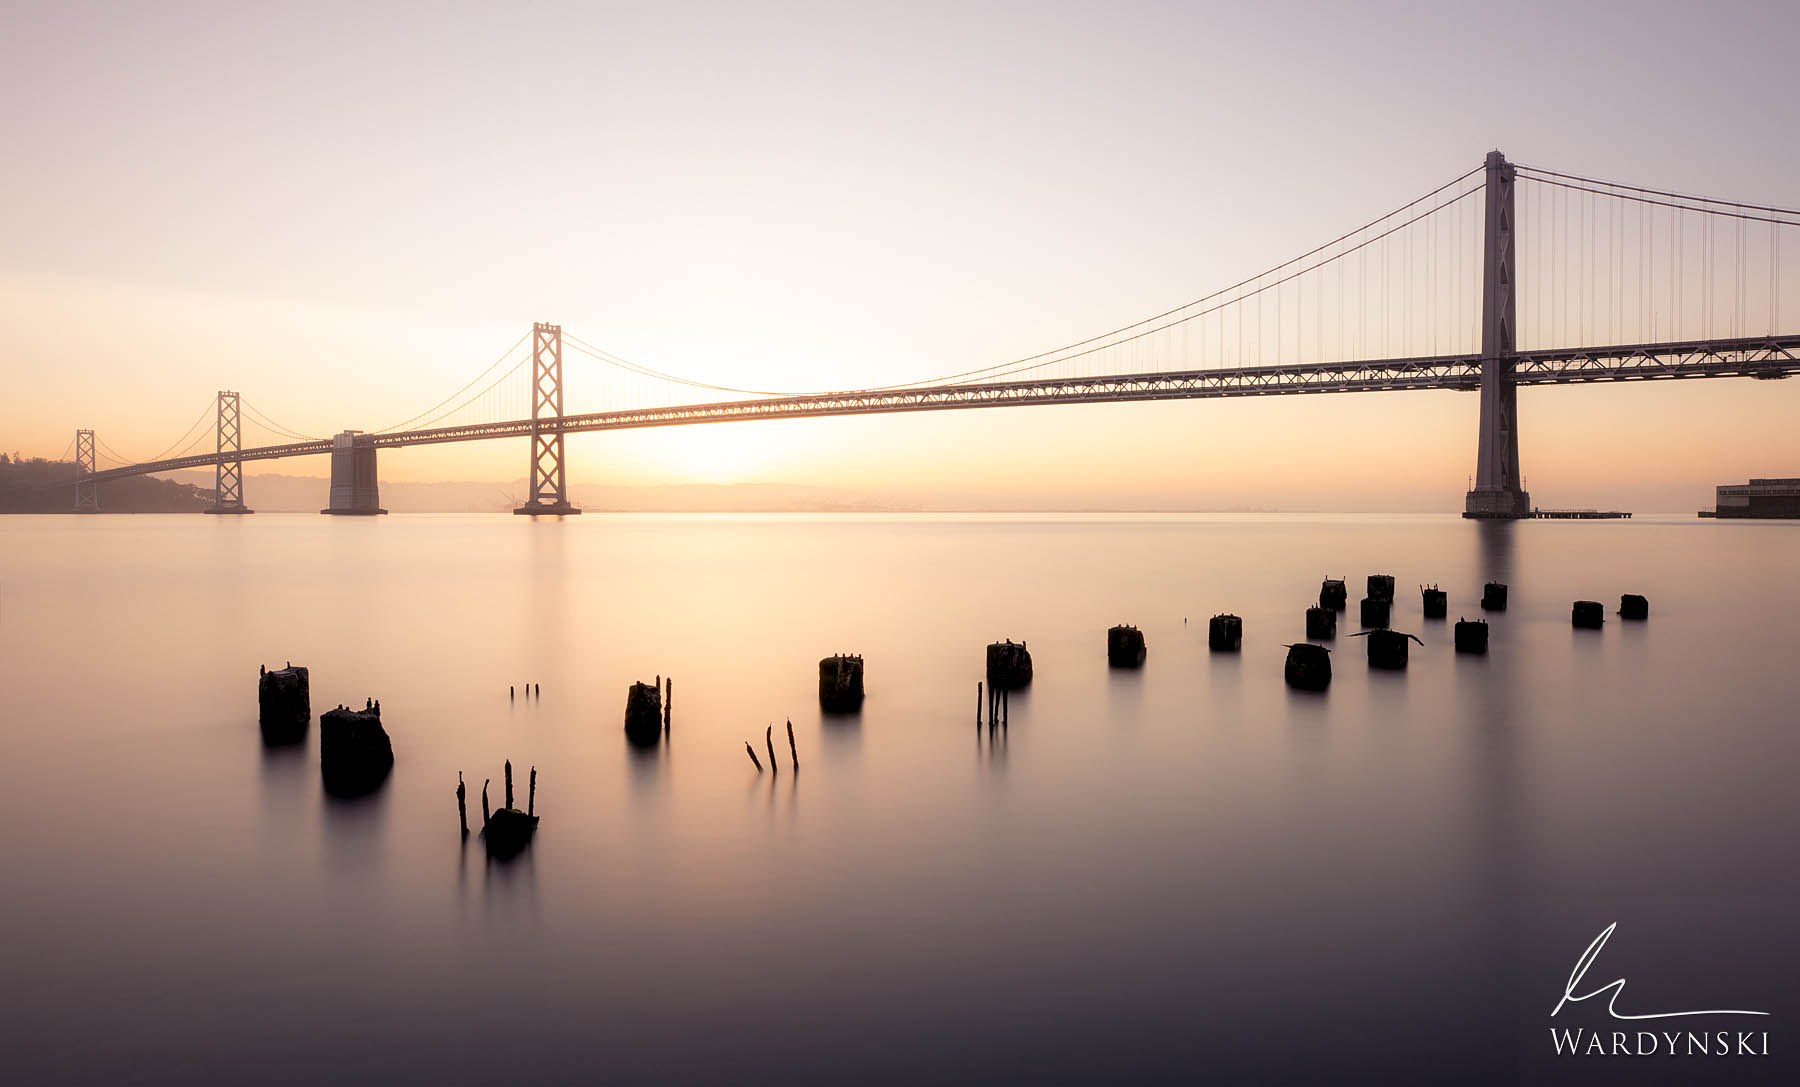 Fine Art Print | Limited Edition of 50  A warm glow emanates from behind the San Francisco span of the Bay Bridge at sunrise....